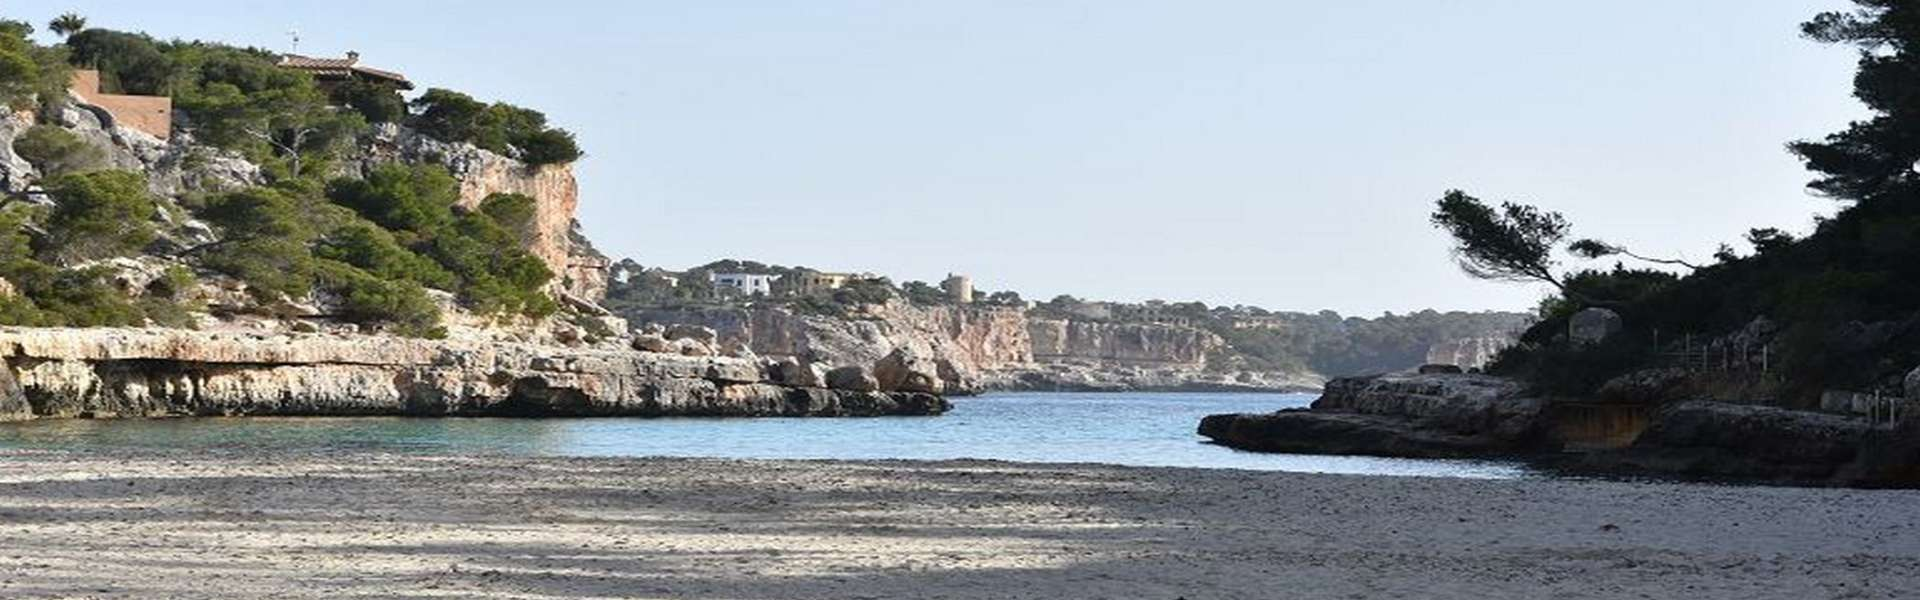 Unique investment opportunity in Cala Llombards